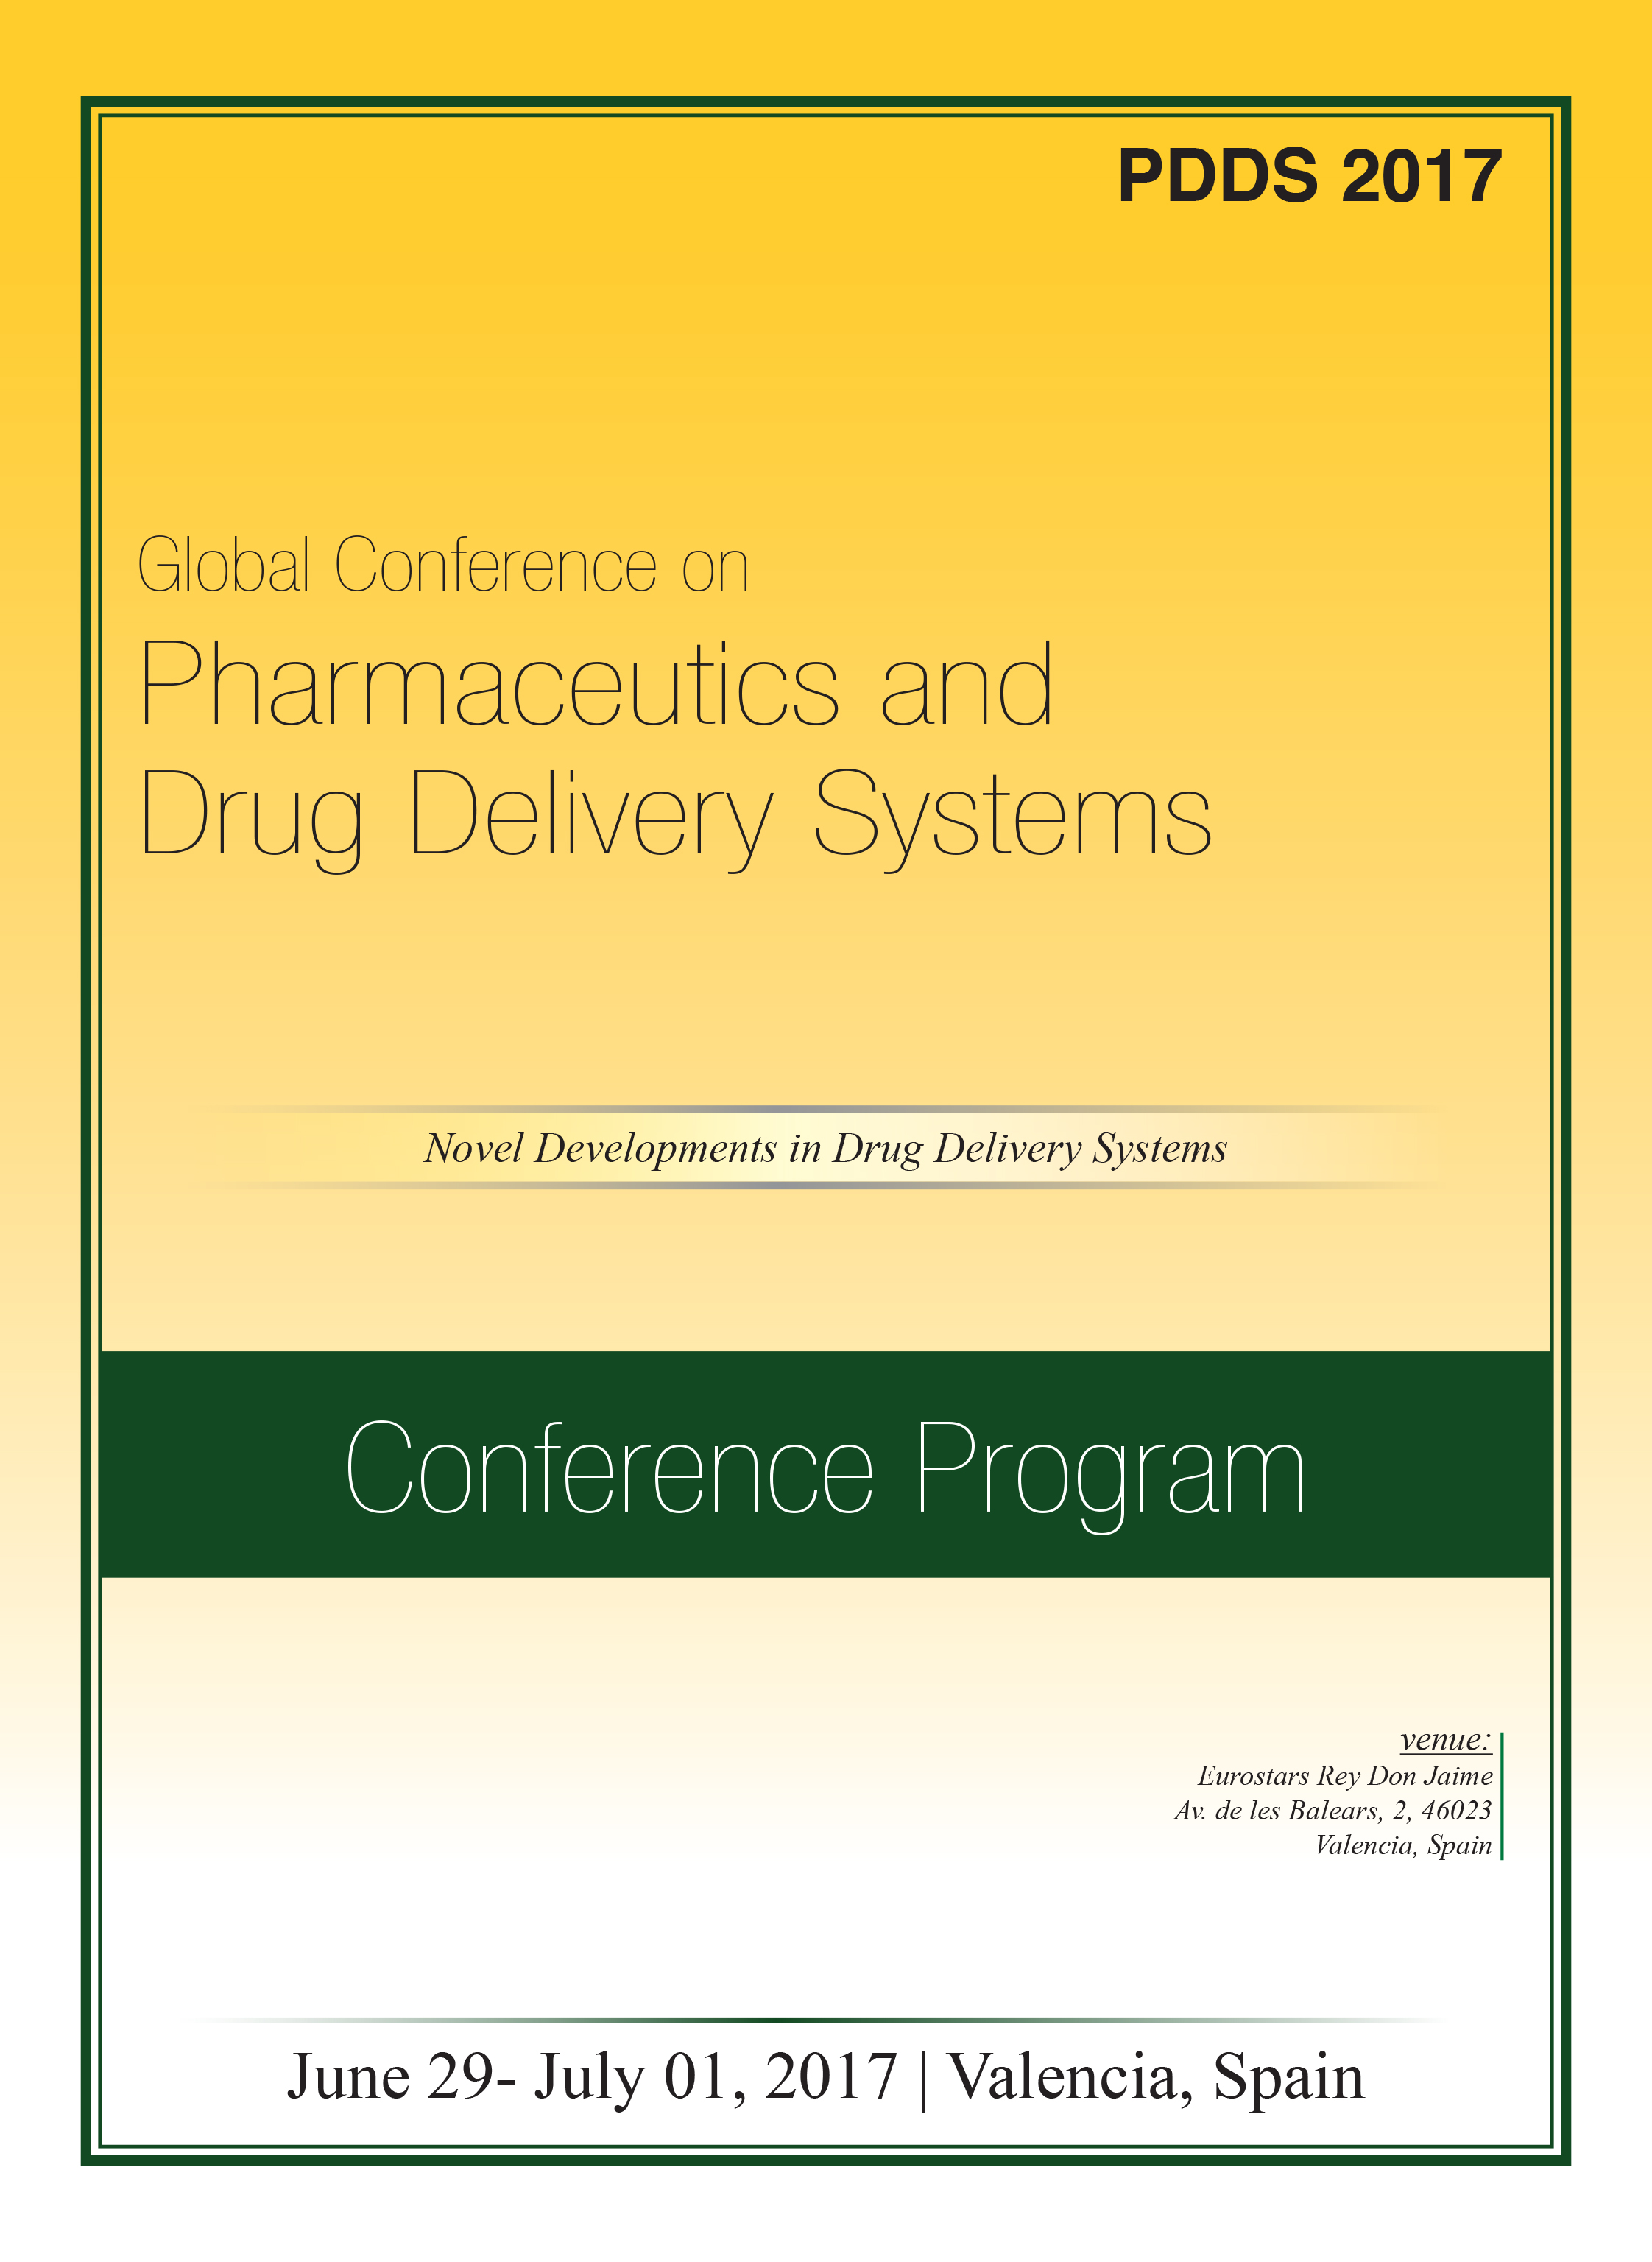 Global Conference on Pharmaceutics and Drug Delivery Systems Program